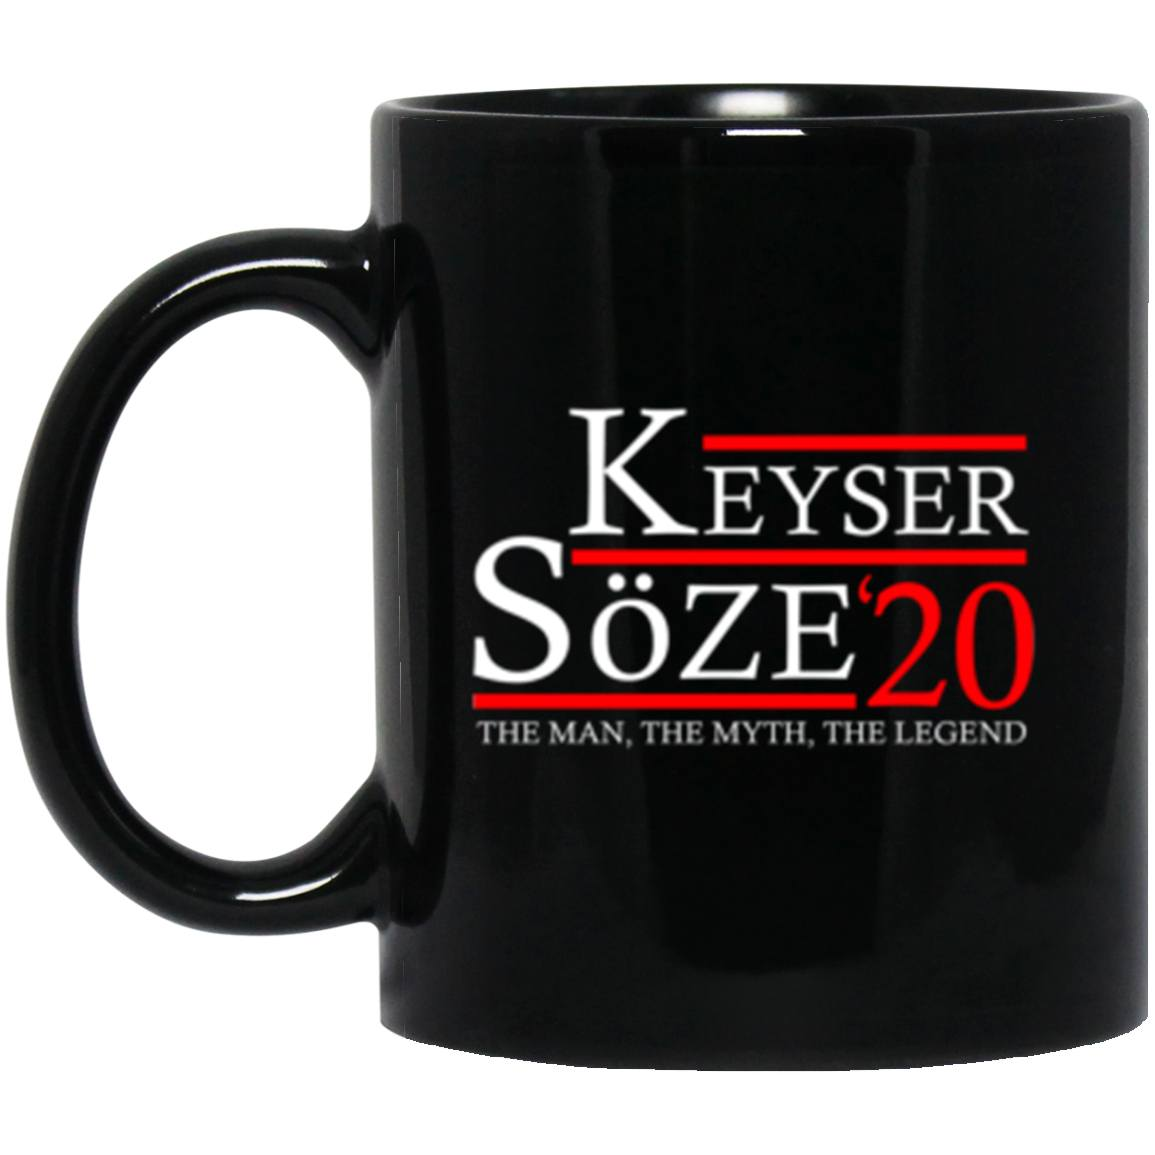 Drinkware - Keyser Soze 20 Black Mug 11oz (2-sided)